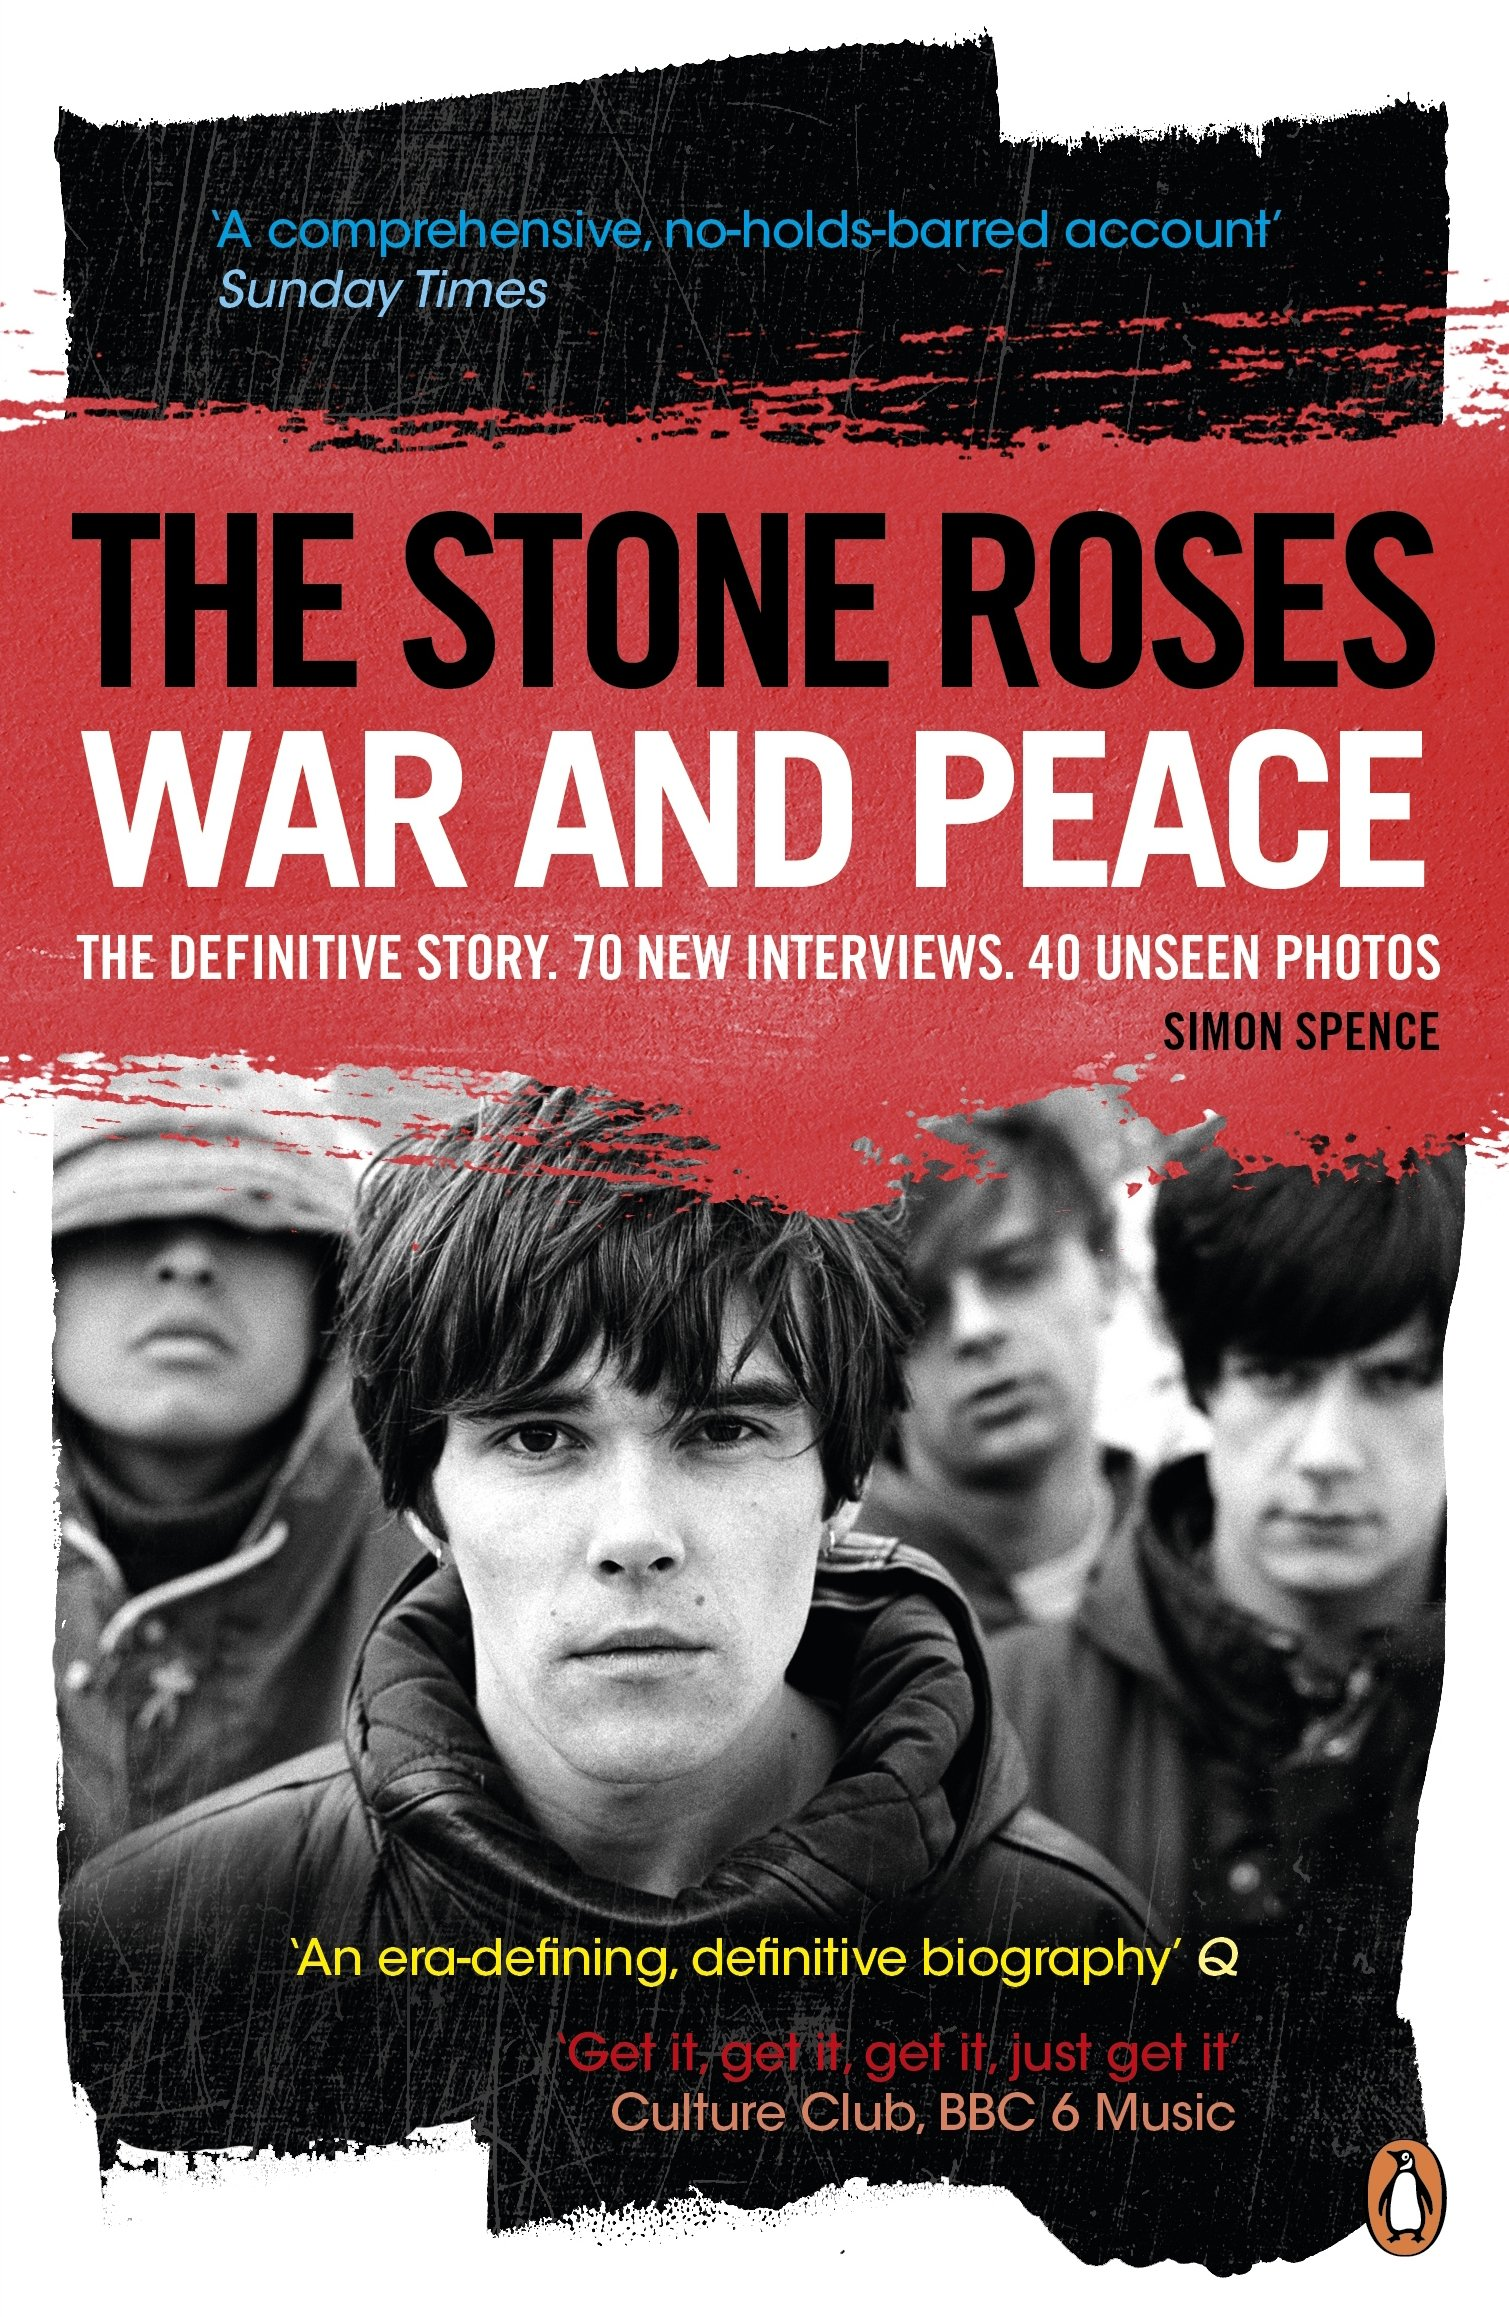 The Stone Roses: War and Peace: Amazon.co.uk: Simon Spence ...